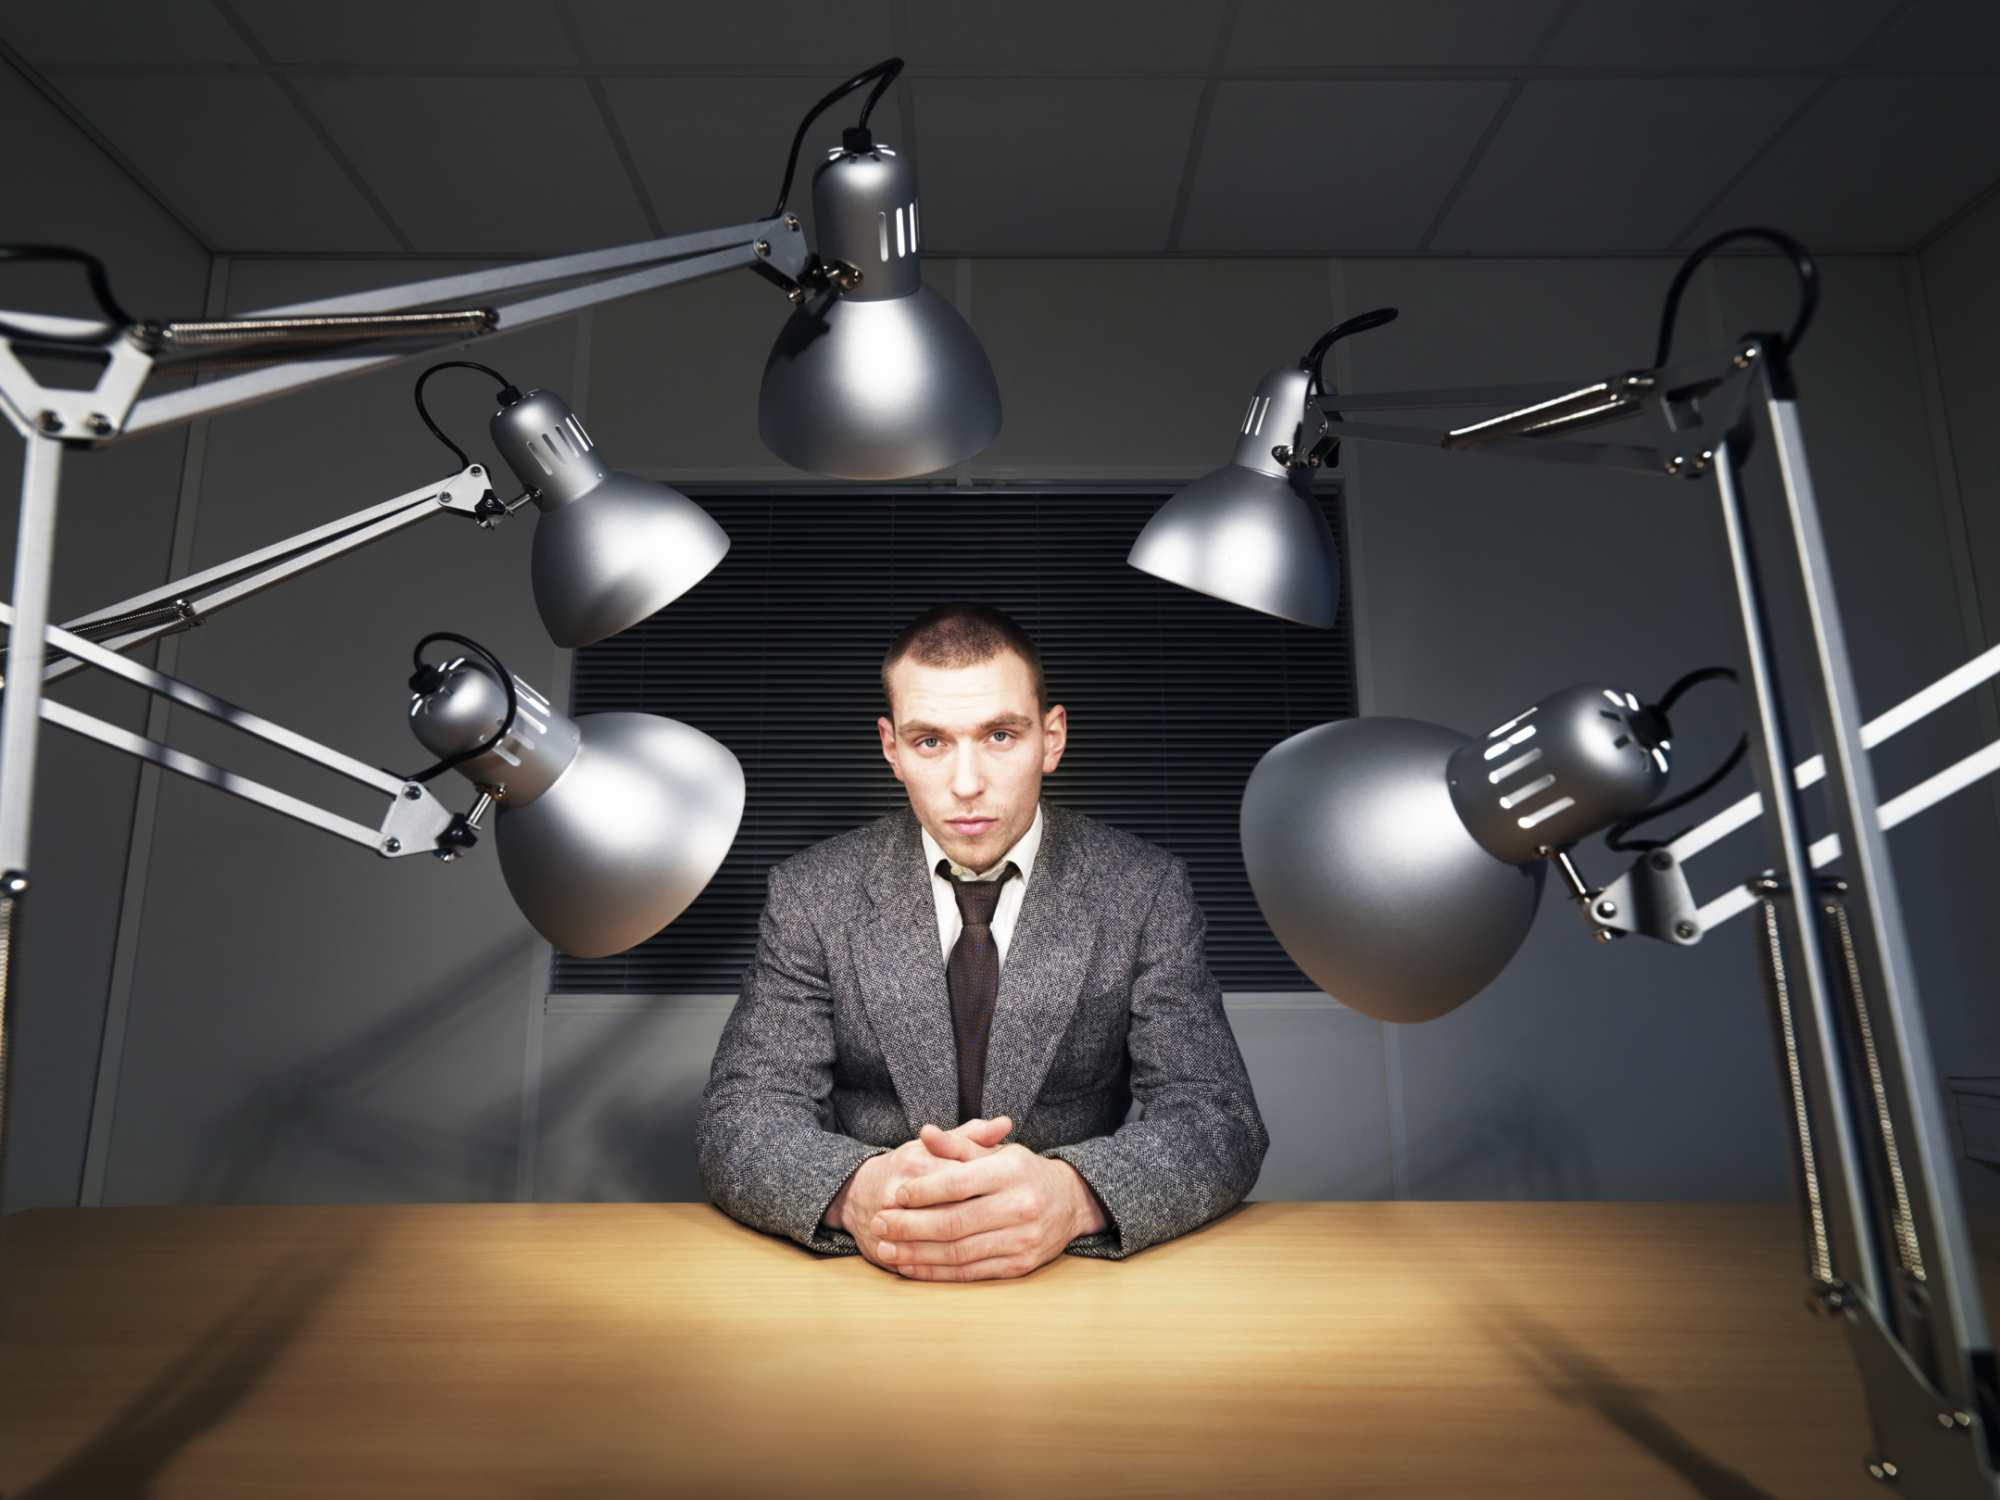 A man sitting at a desk with lights pointed at him.